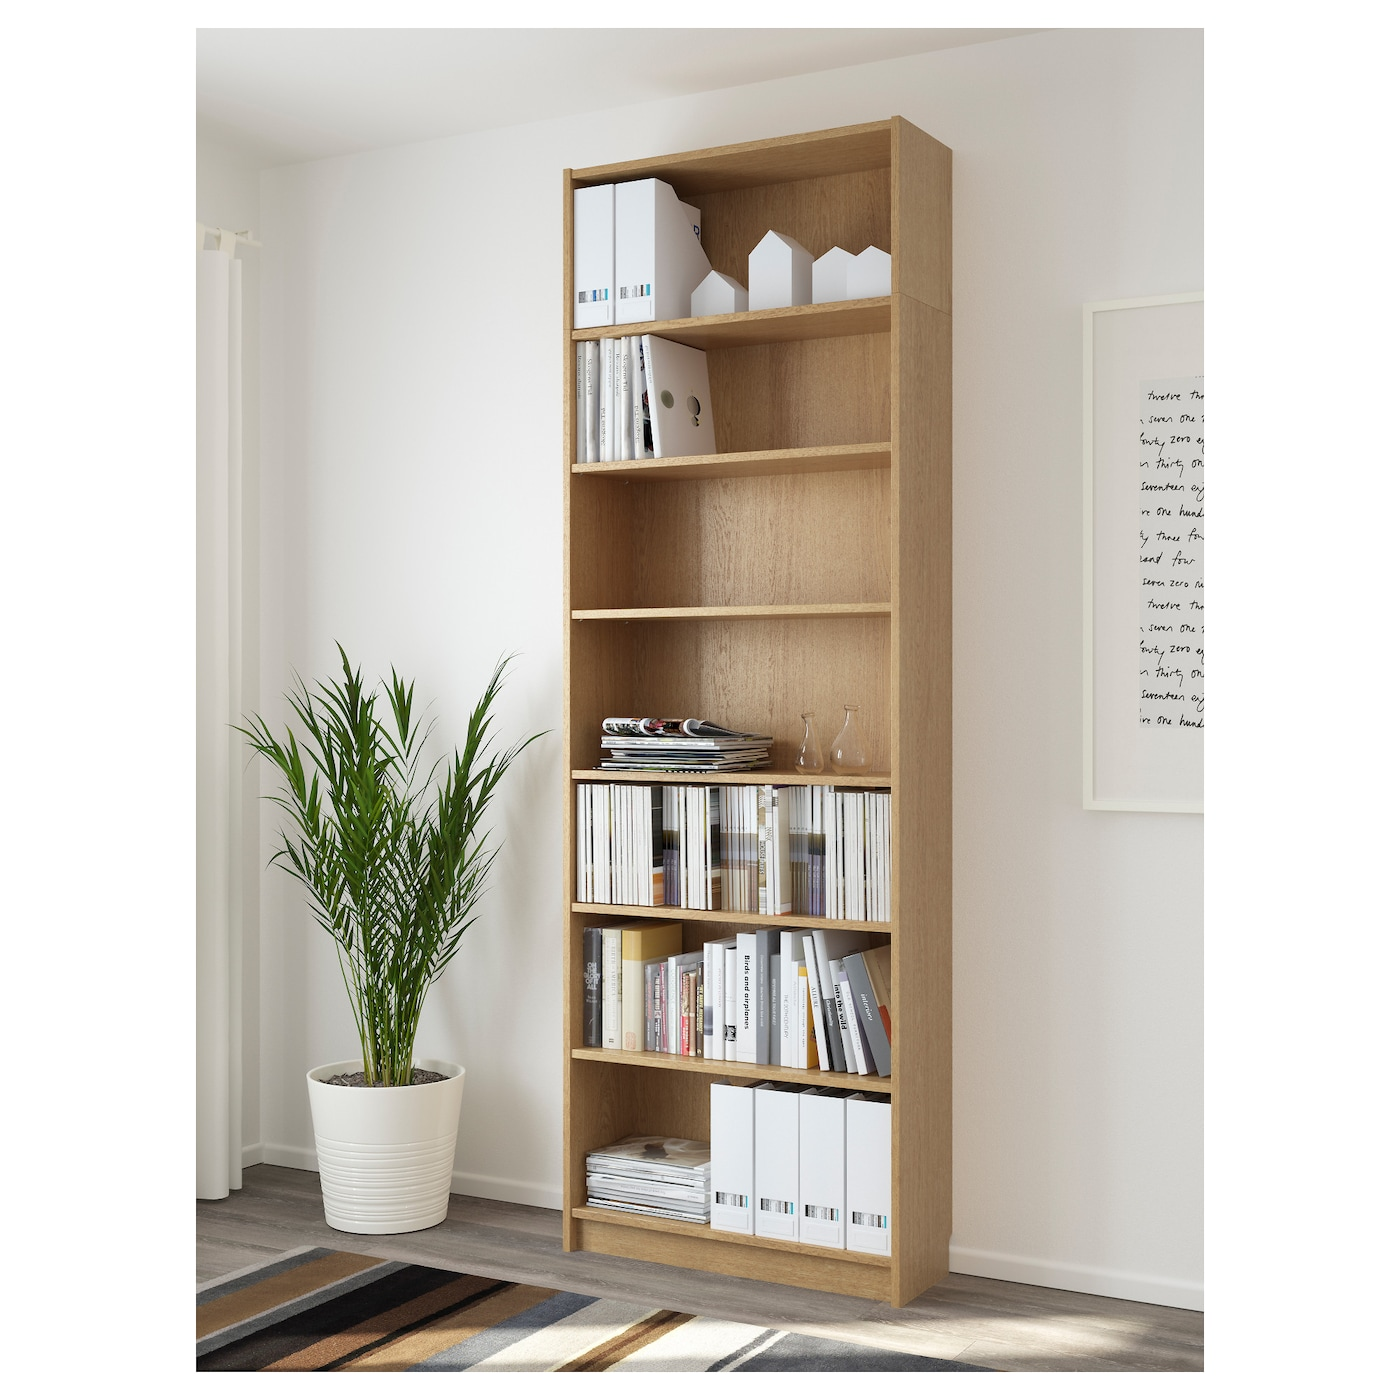 ikea billy bookcase adjustable shelves adapt space between shelves according to your needs - Billy Bookshelves